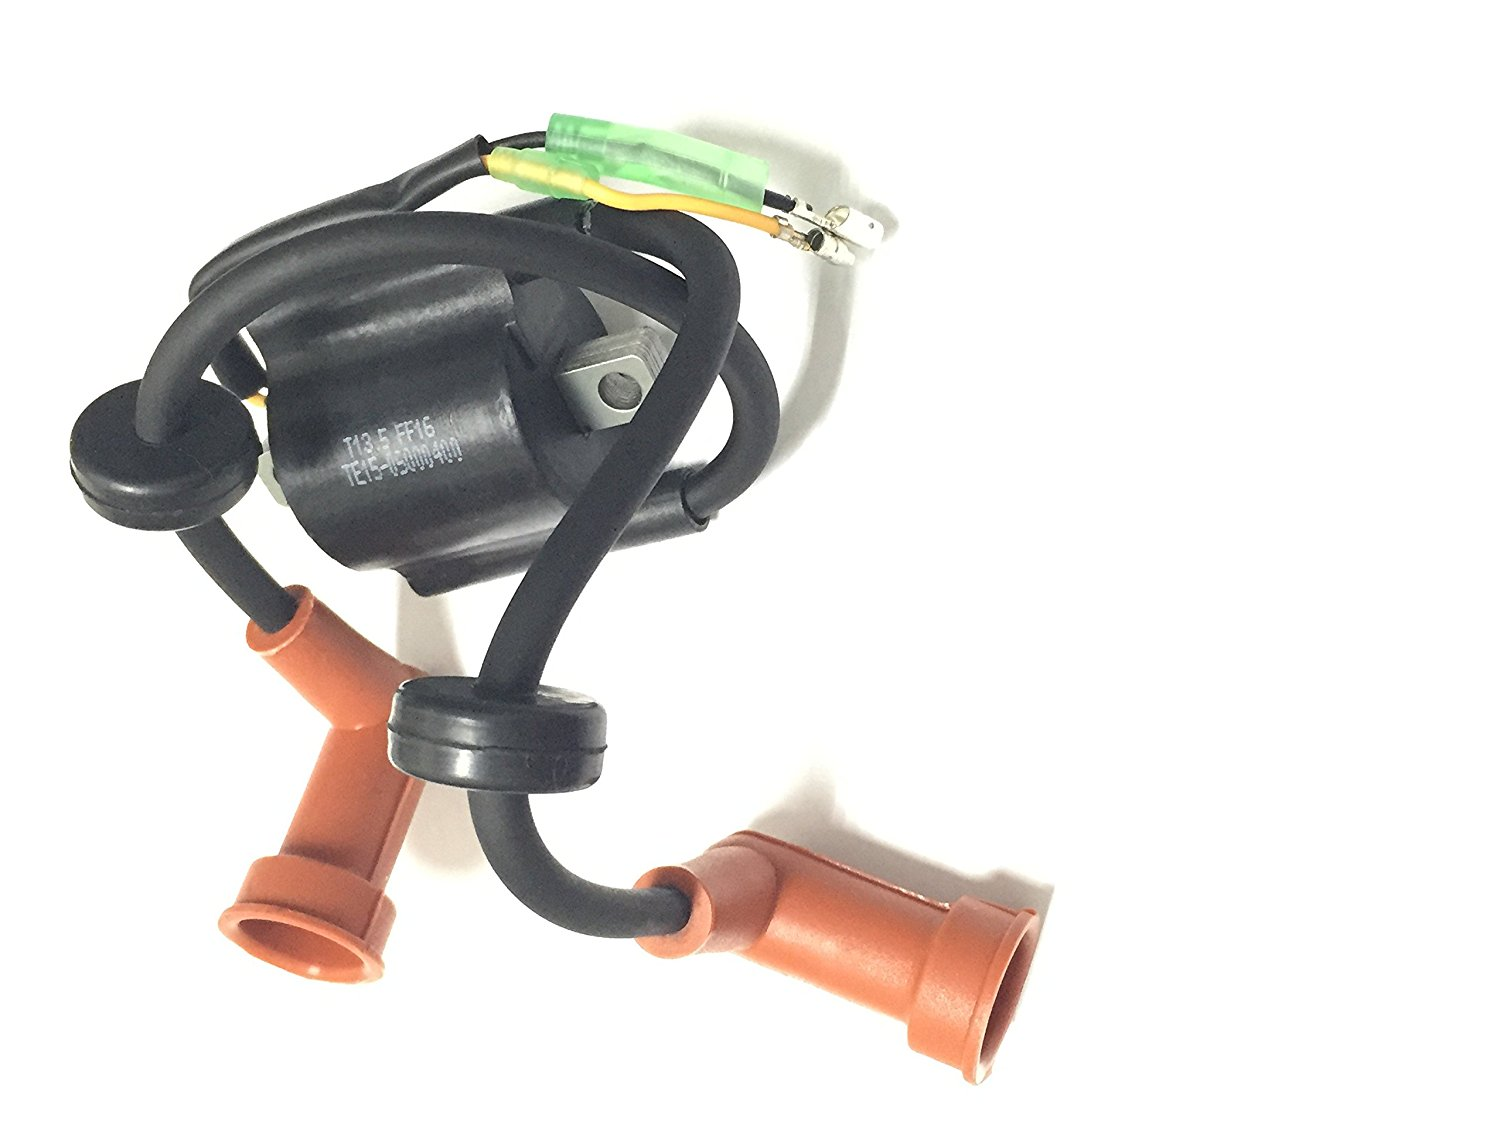 For TOHATSU NISSAN Outboard 9.9-18 HP NS9.9D2 Ignition Coil Assy 3G2-06040-2